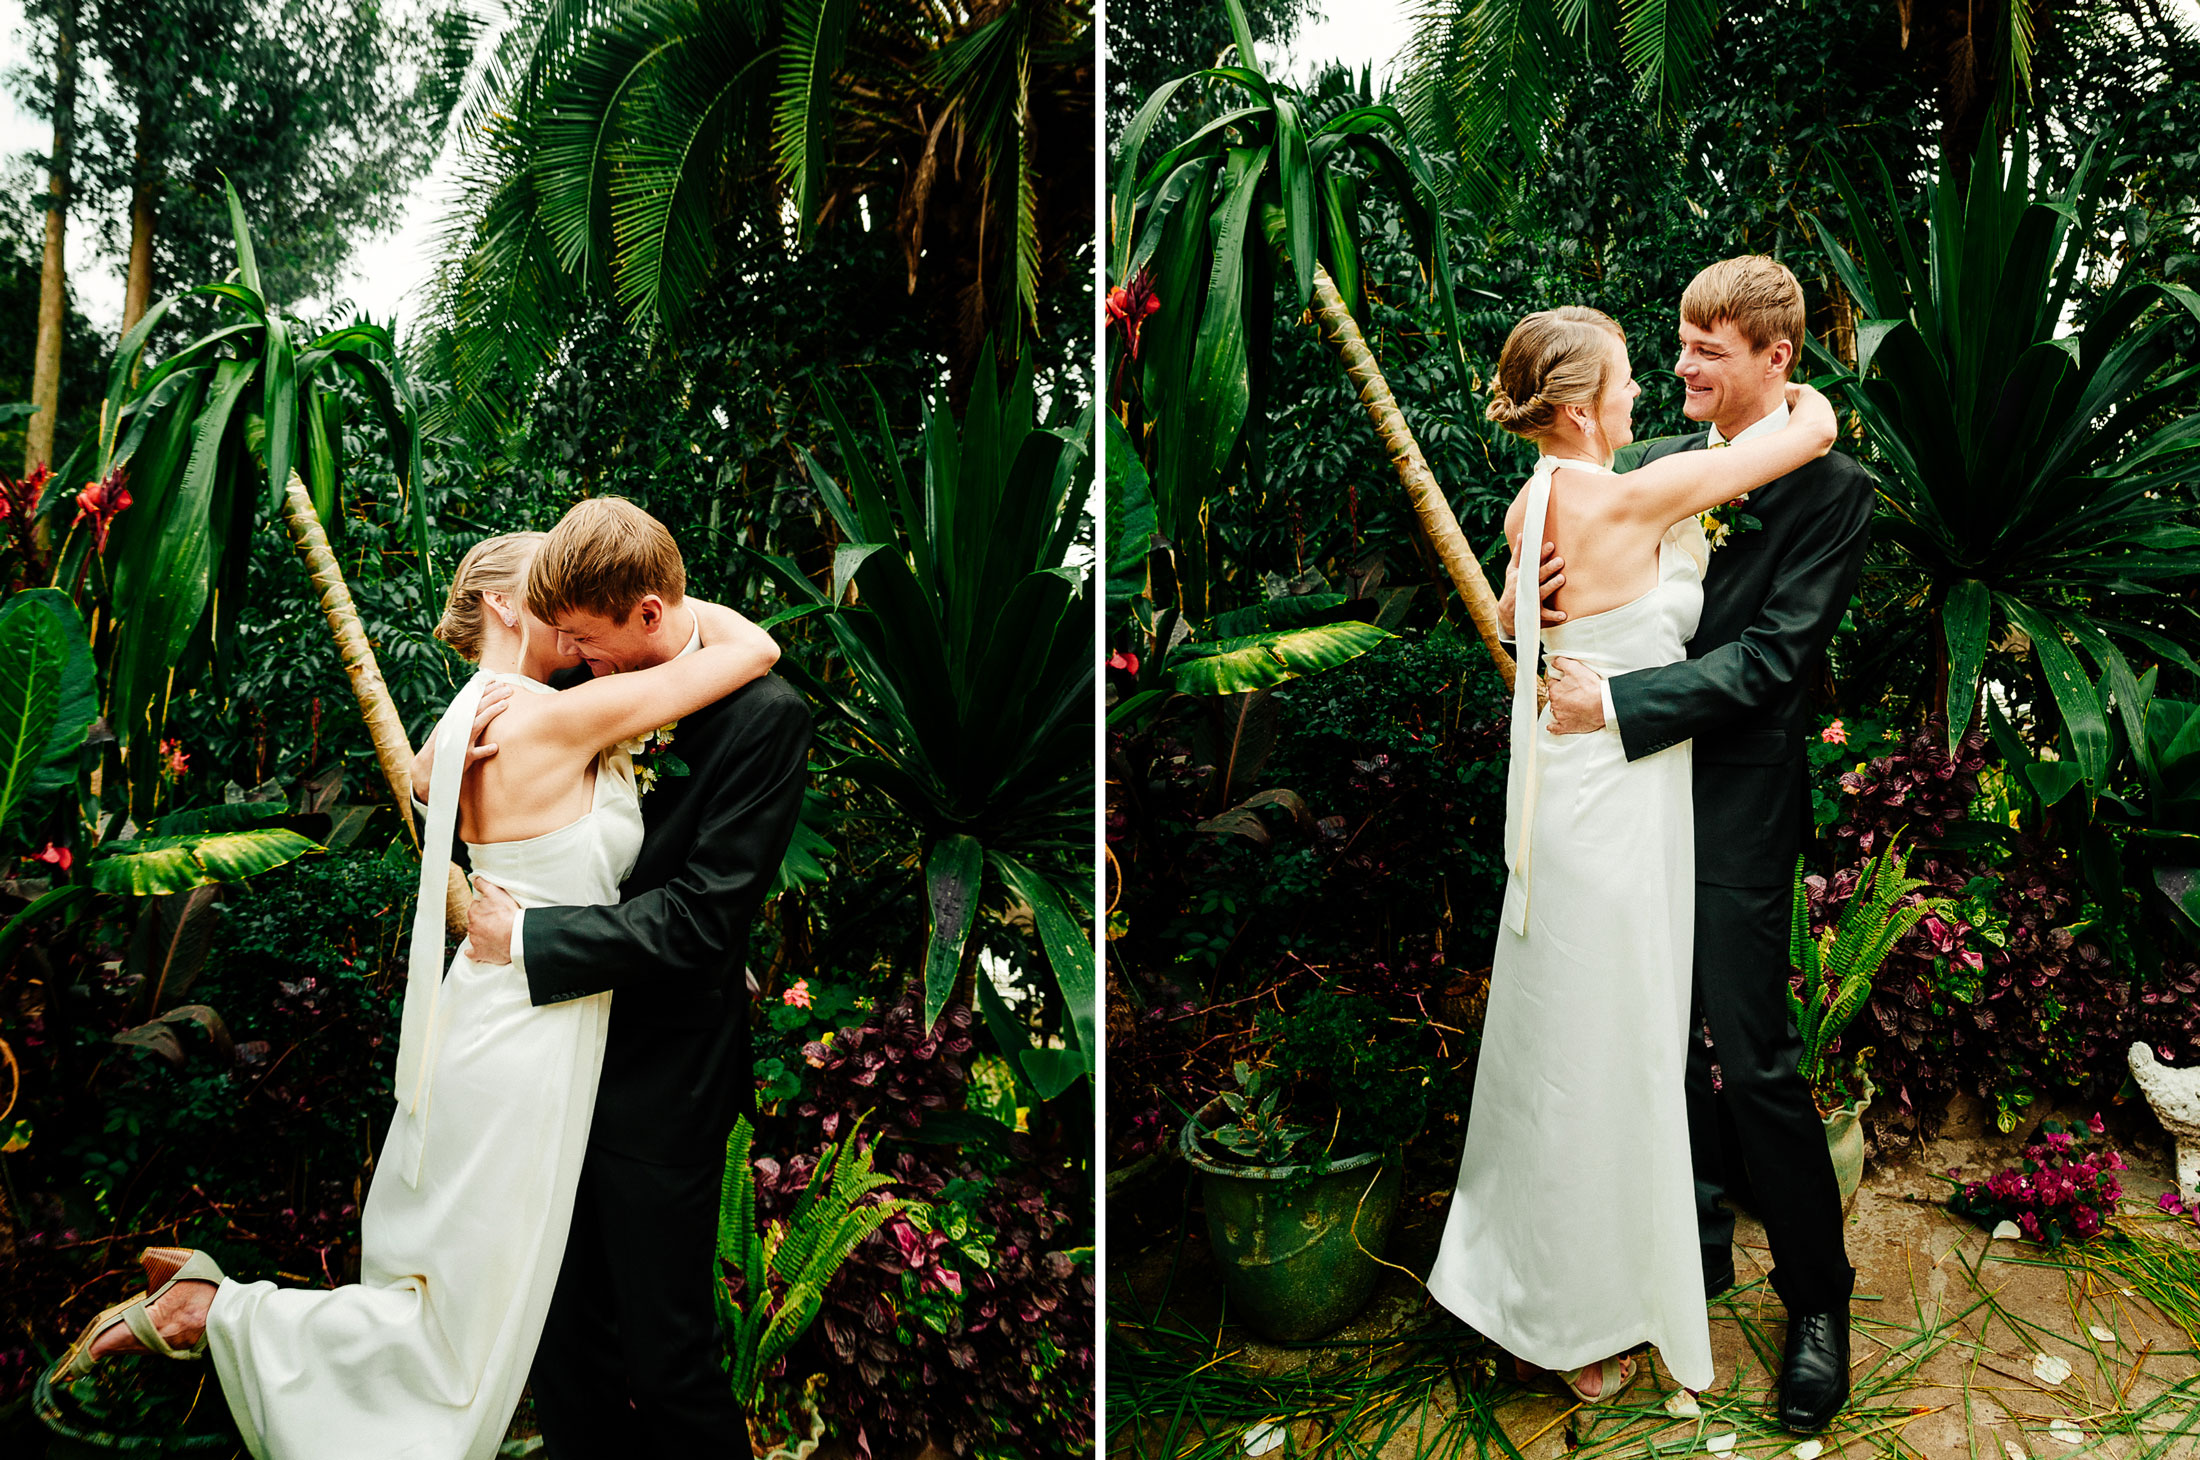 Bride and groom embrace after vows by Arcata wedding photographer Kate Donaldson Photography